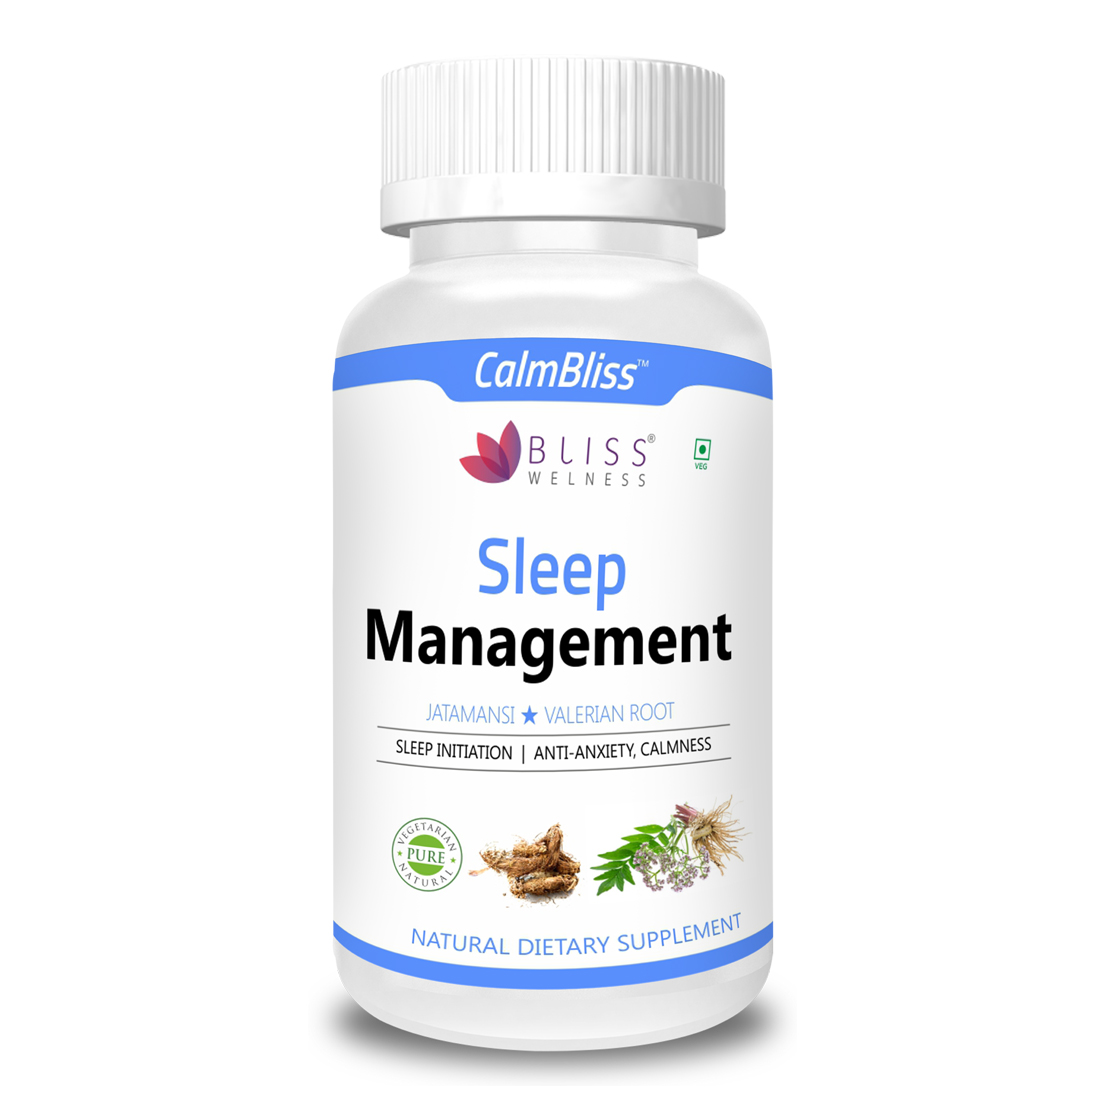 Bliss Welness 'Calm Bliss' Sleep Management Combo of Jatamansi & Valerian Root